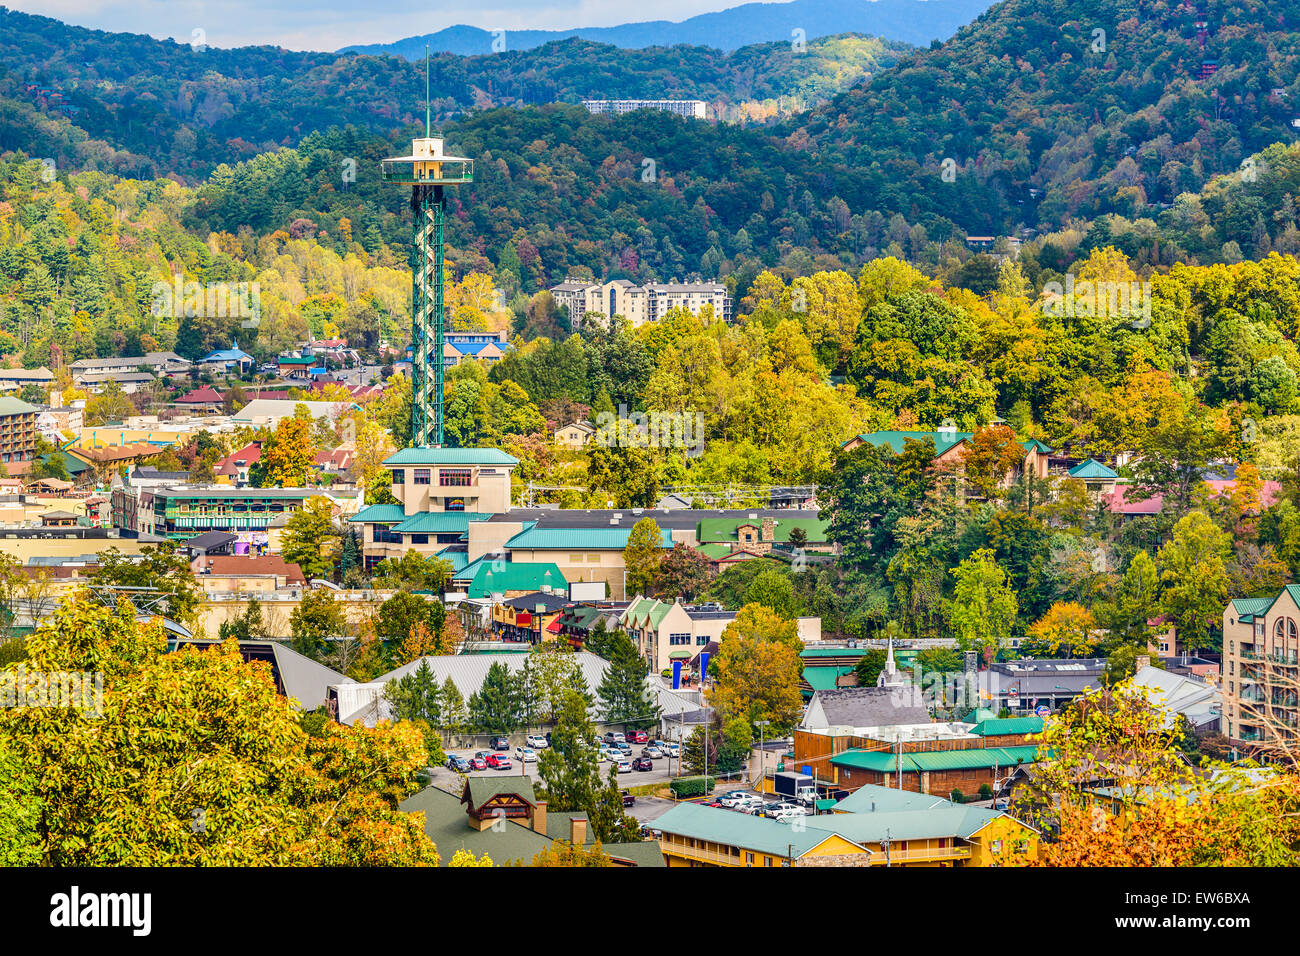 Gatlinburg, Tennessee, USA townscape in the Smoky Mountains. - Stock Image